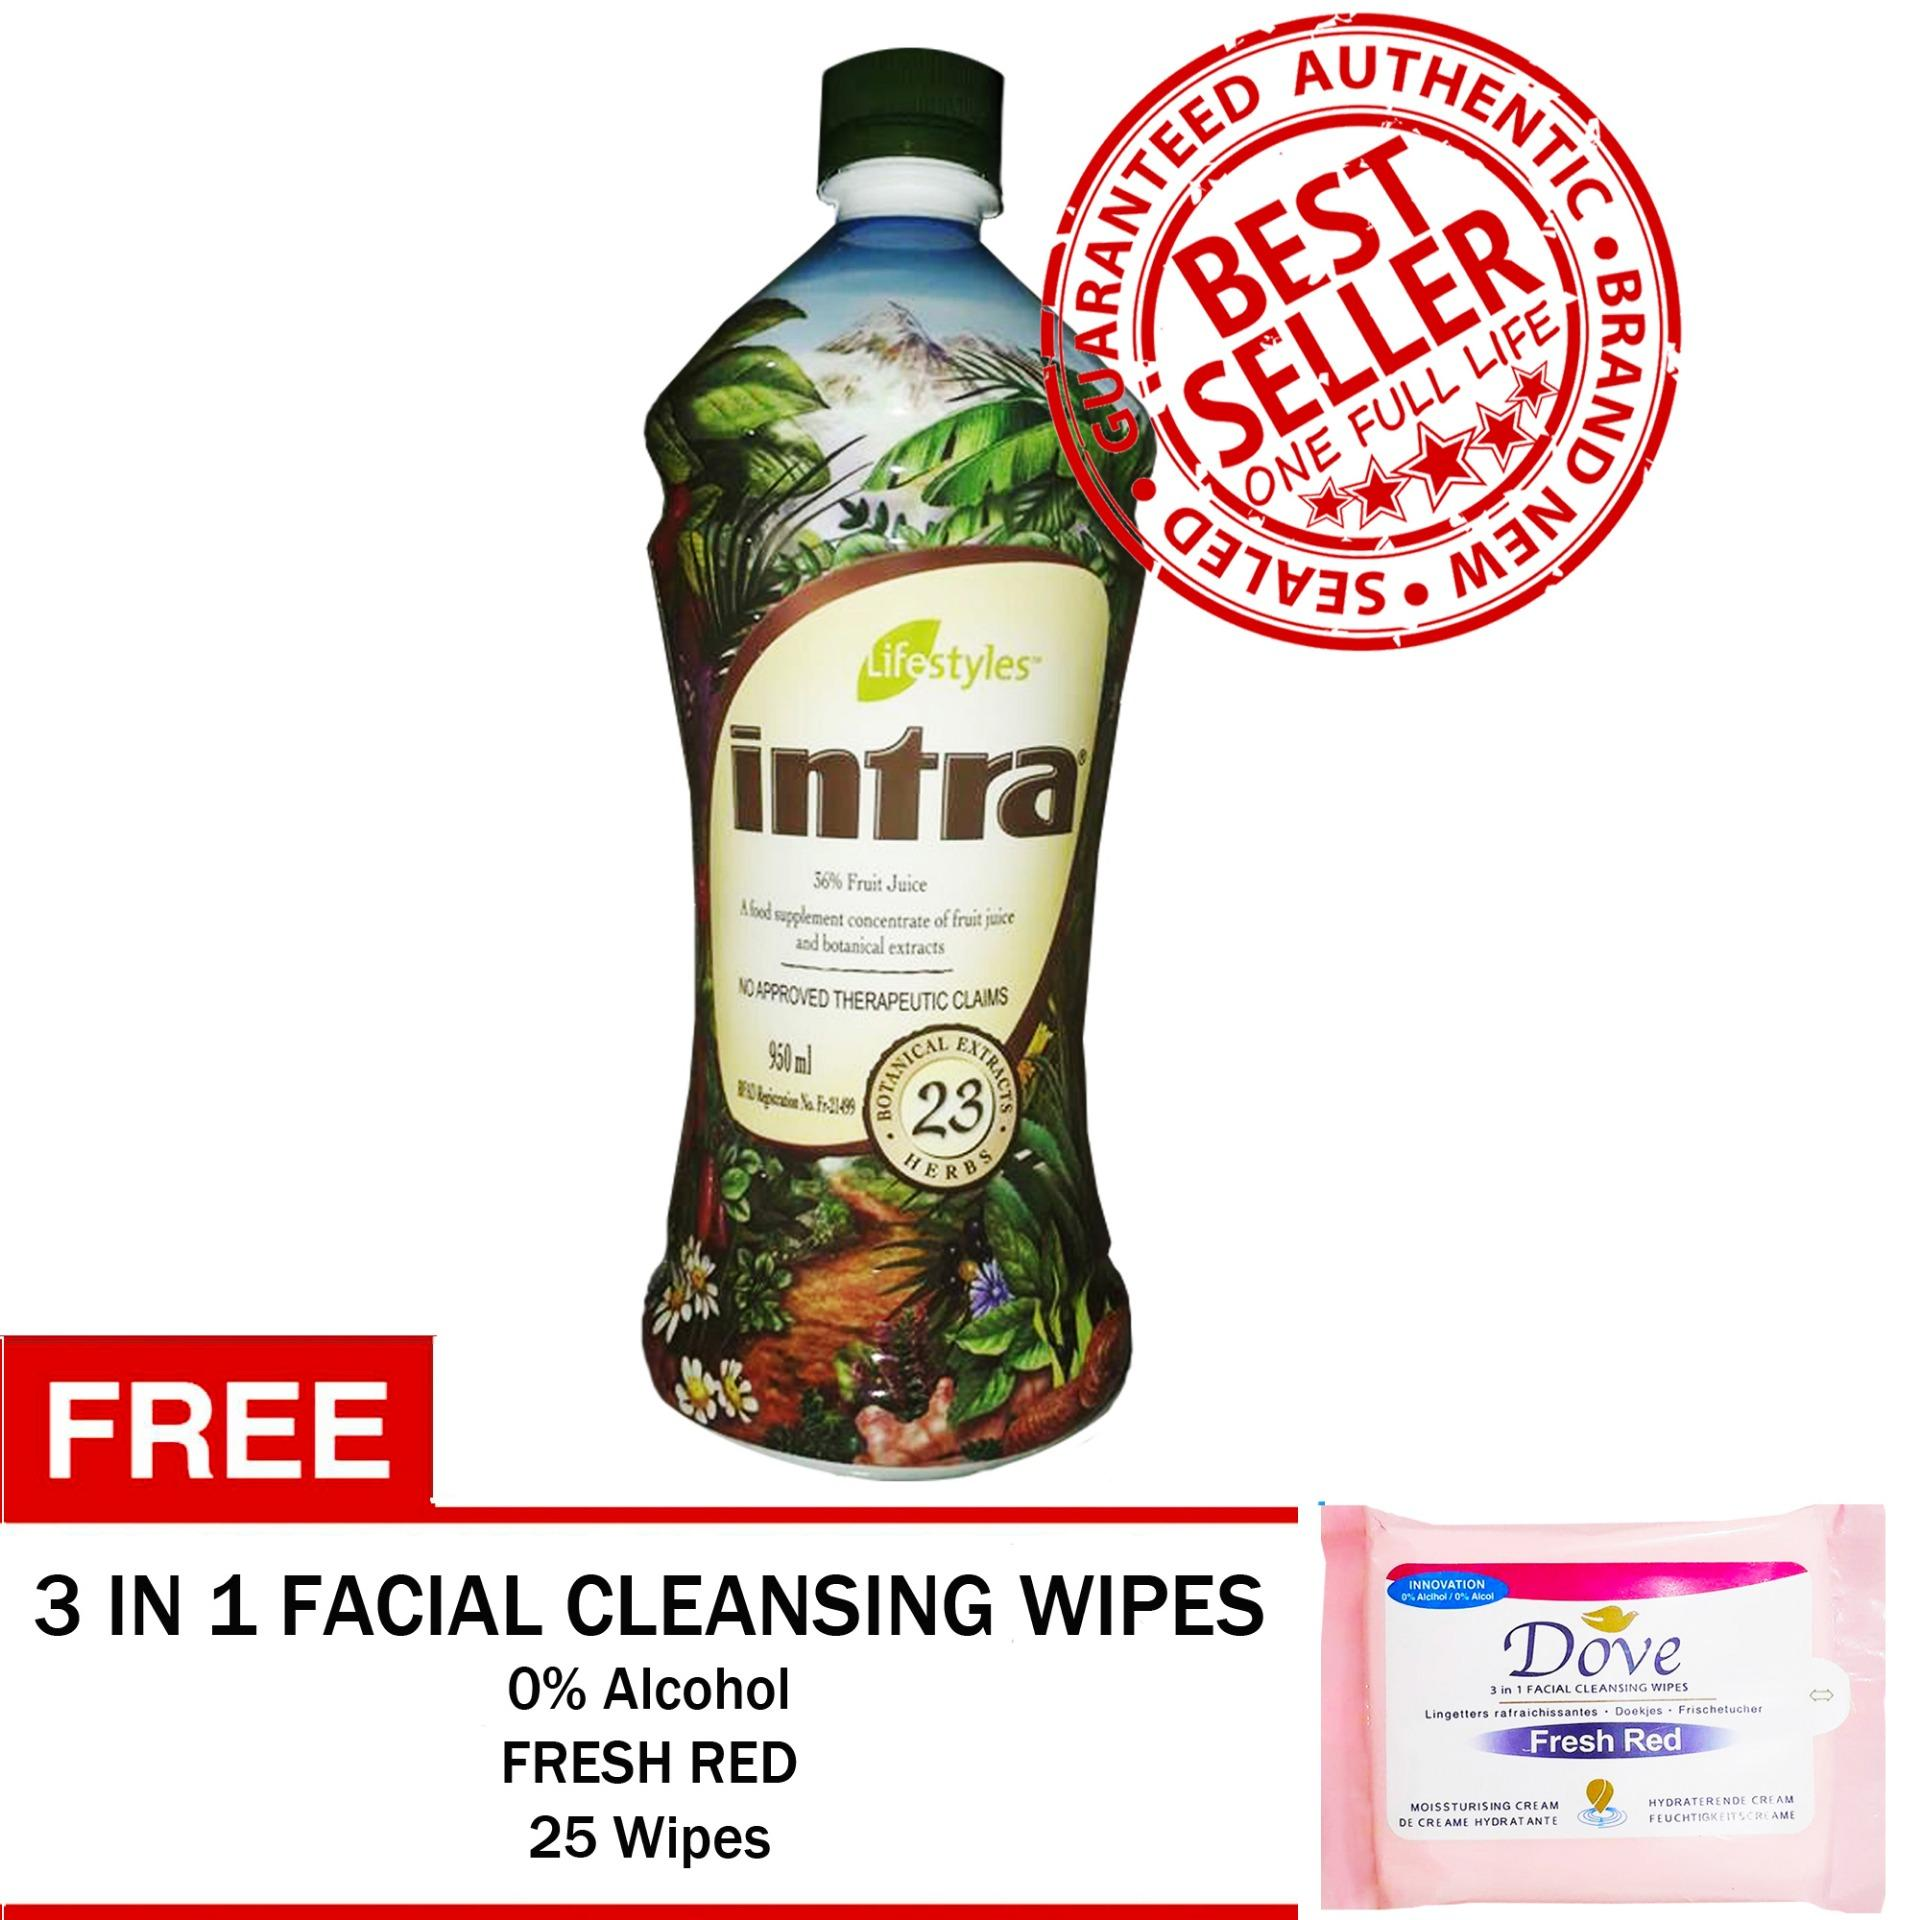 Juices Brands Fruit Juice On Sale Prices Set Reviews In Tricajuice Lifestyles Intra 23 Herbal With Free Facial Wipes